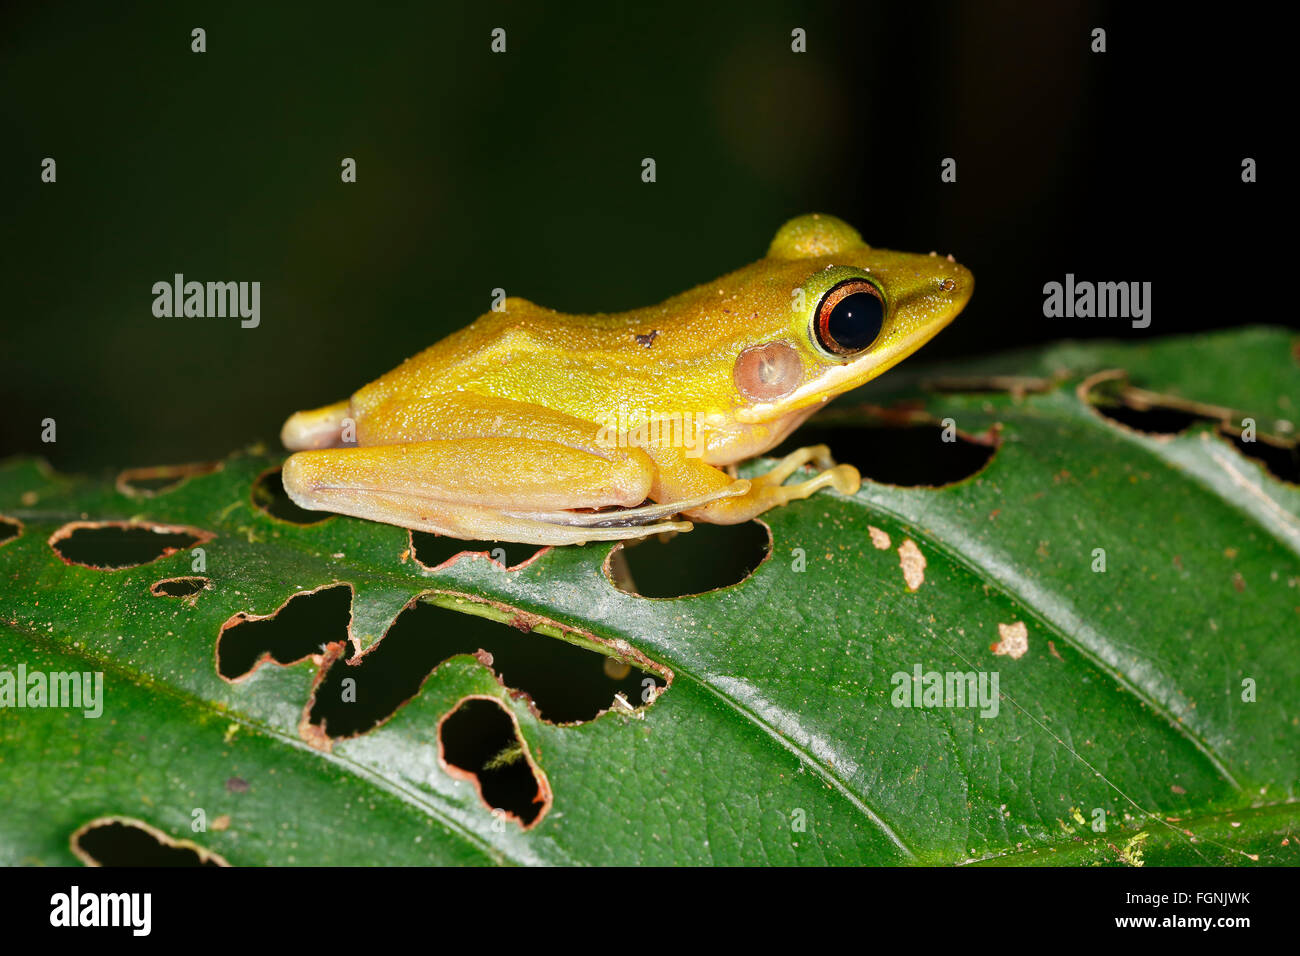 White-lipped frog (Rana chalconota), true frog in the tropical rainforest, by night, Kubah National Park, Sarawak, - Stock Image